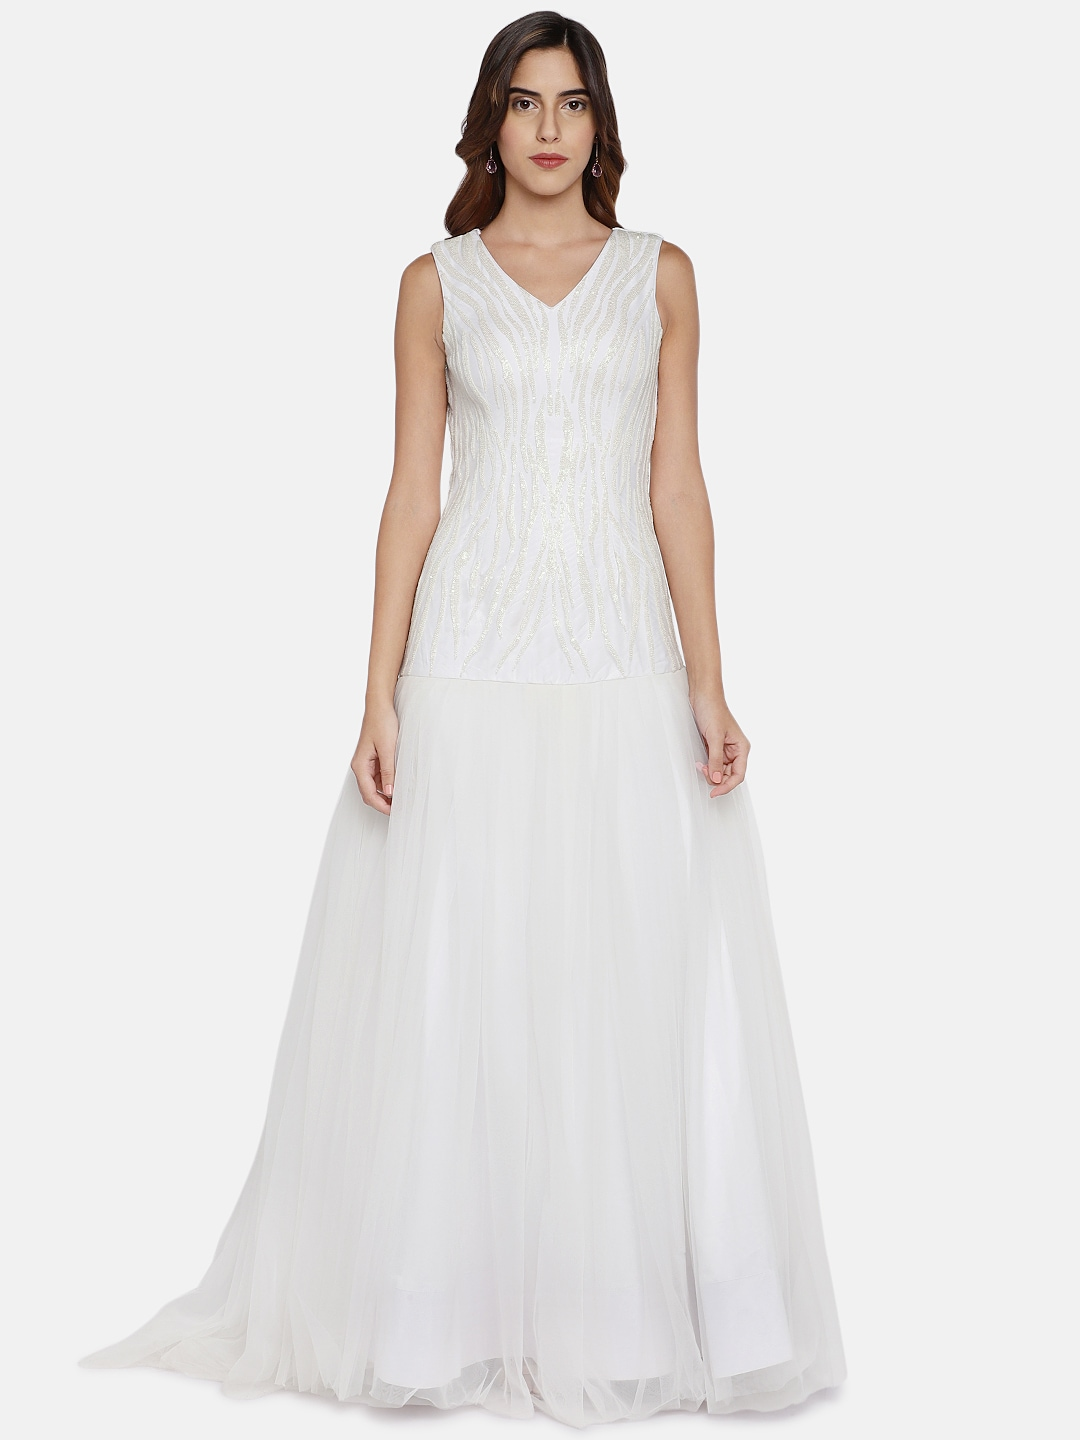 54912cb0e76 White Party Dresses - Buy White Party Dresses online in India